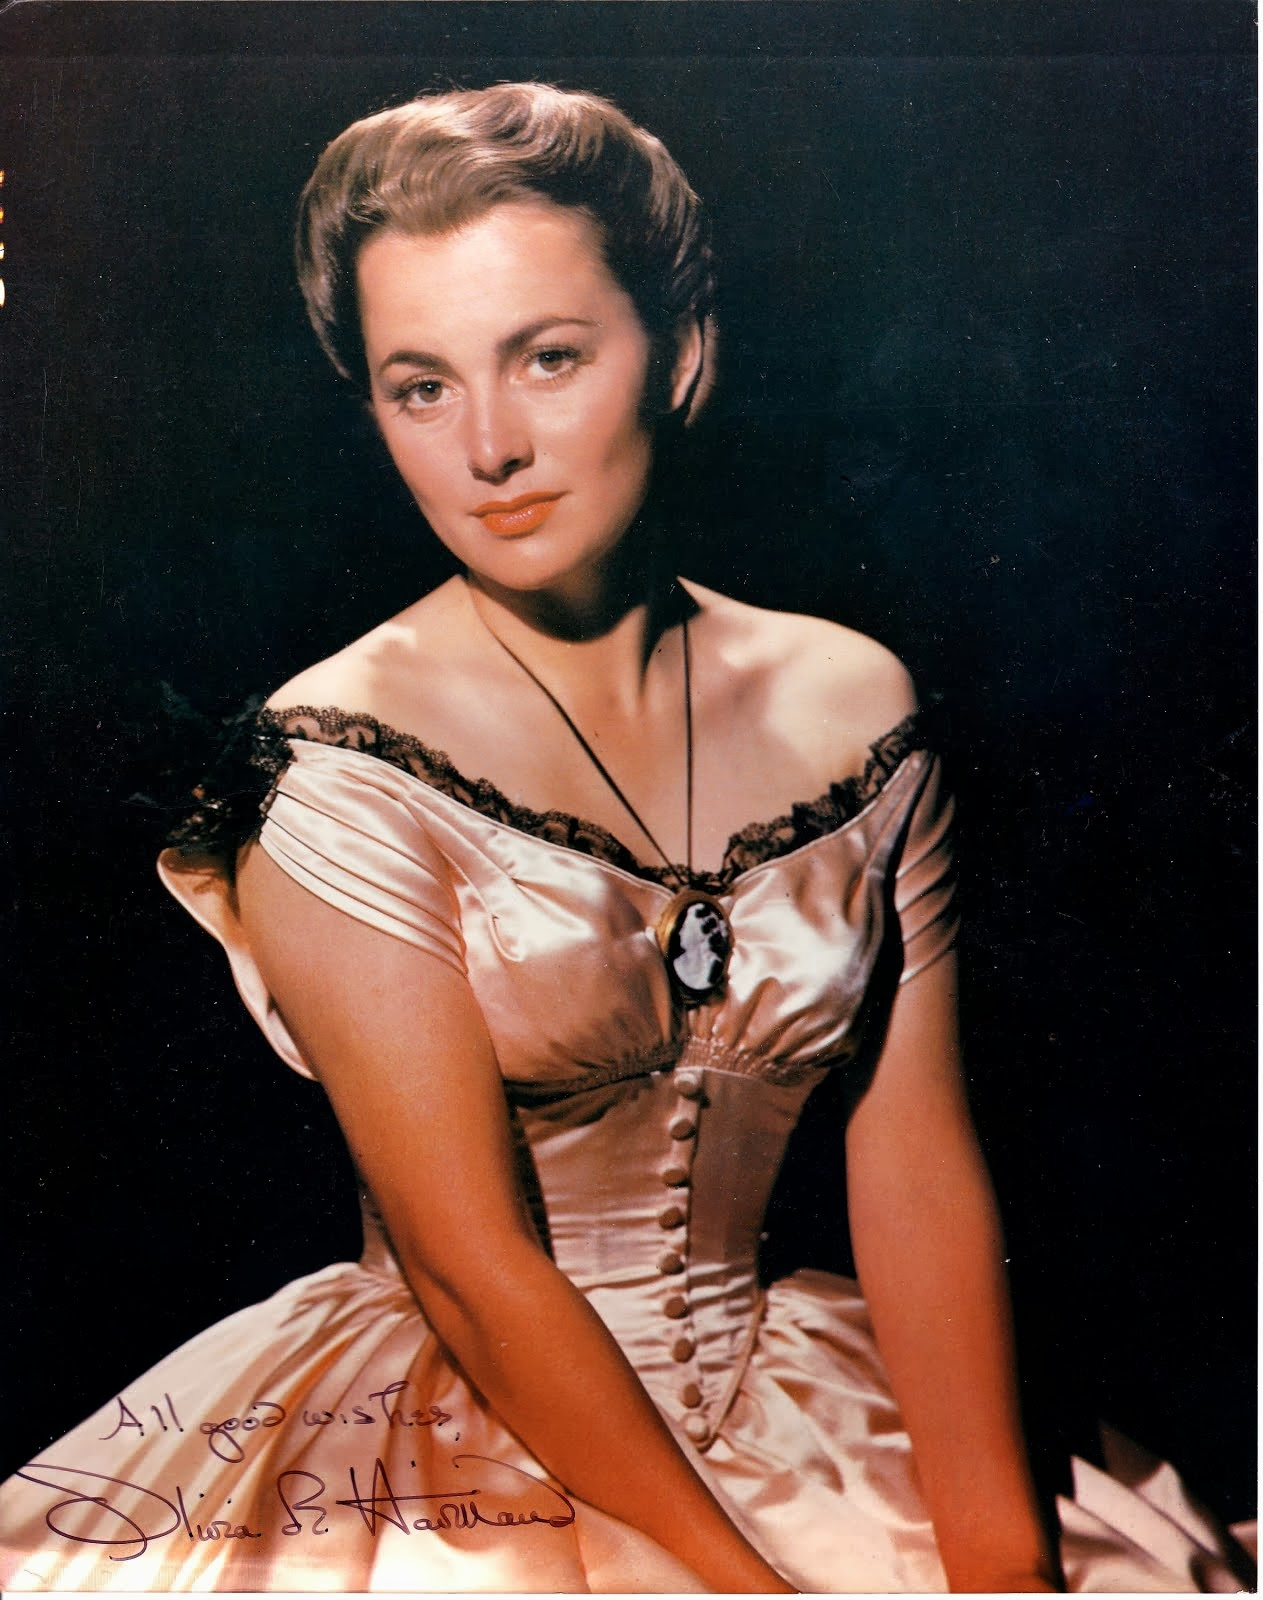 Academy Award Winner Olivia de Havilland auto. 8x10 photo